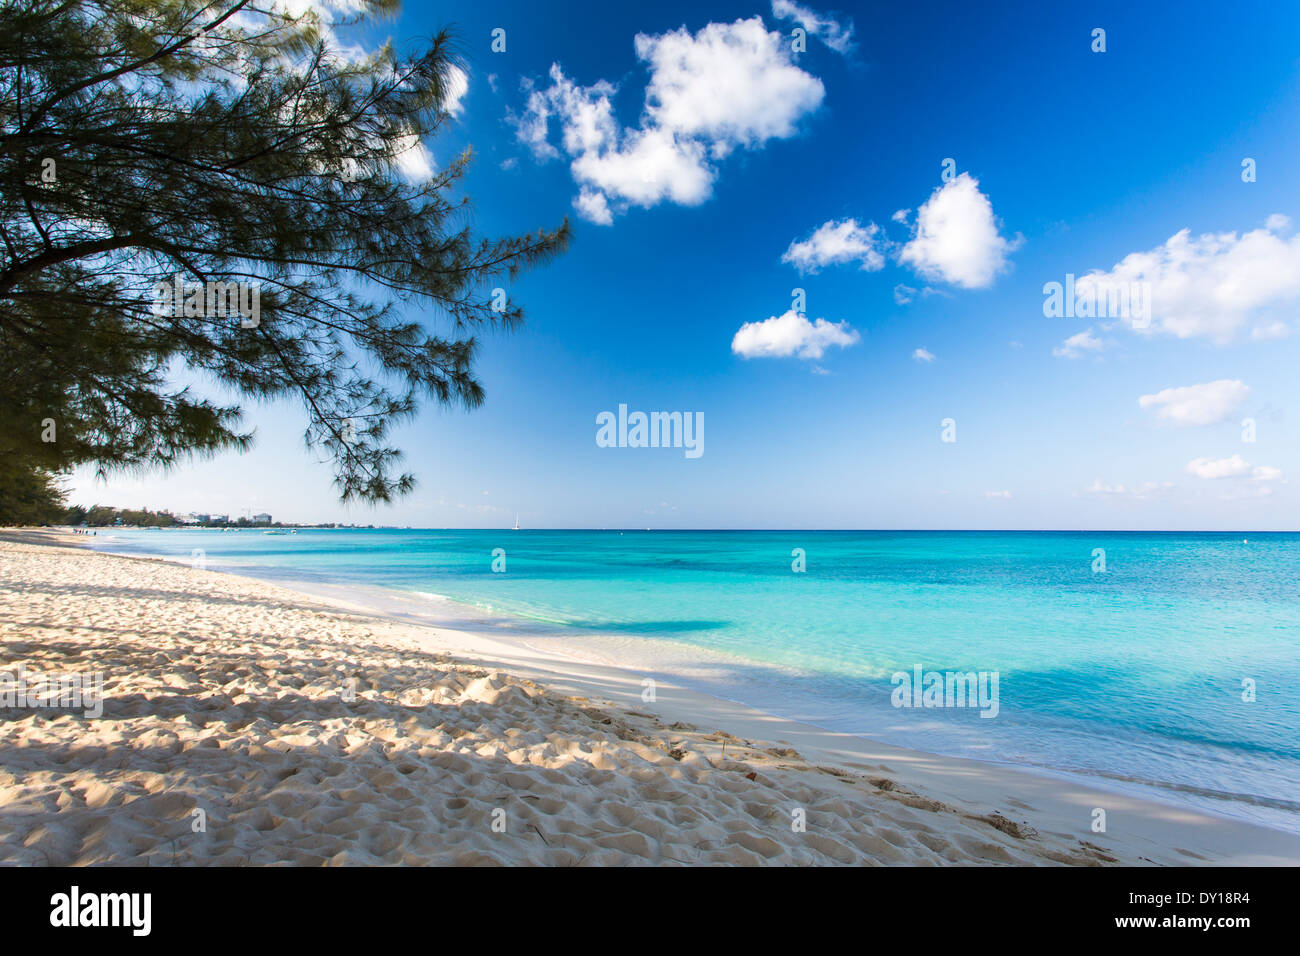 Early morning on Seven Mile Beach, Grand Cayman, Cayman Islands, Caribbean. - Stock Image